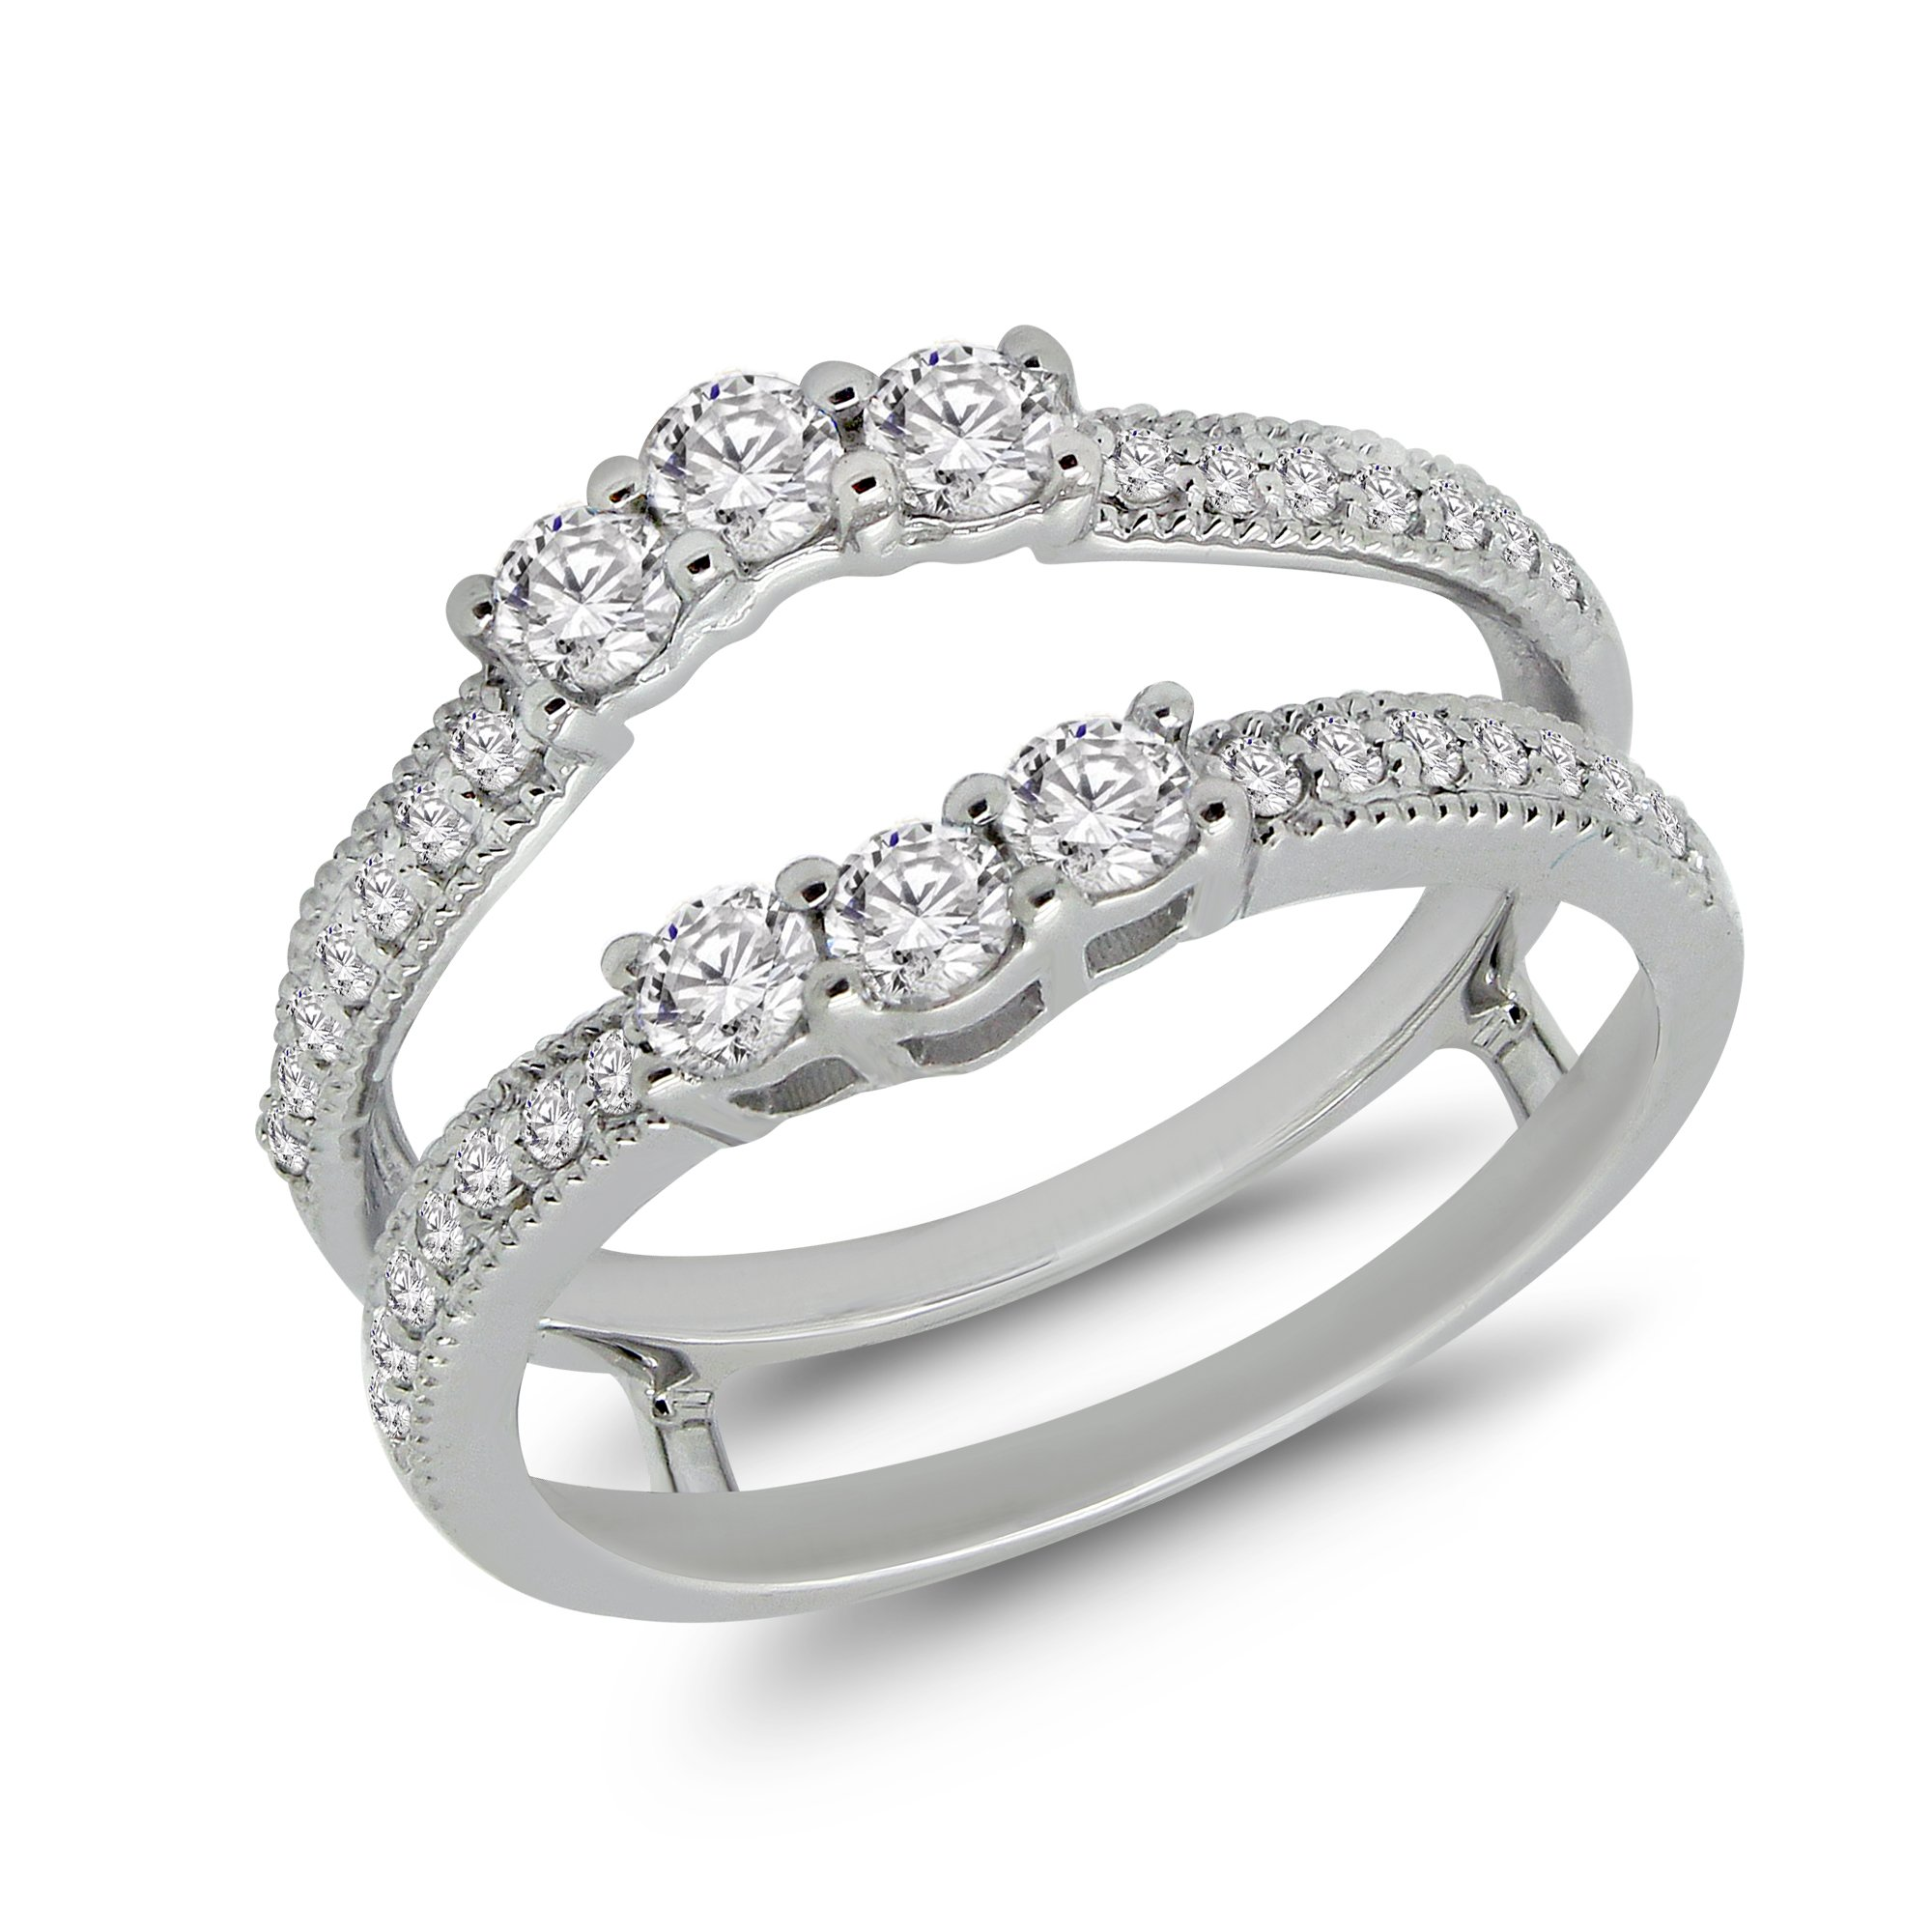 OMEGA JEWELLERY 3/4 Ct Round Cut Natural Diamond Enhancer Guard Wrap Ring in 14K White Gold (5)